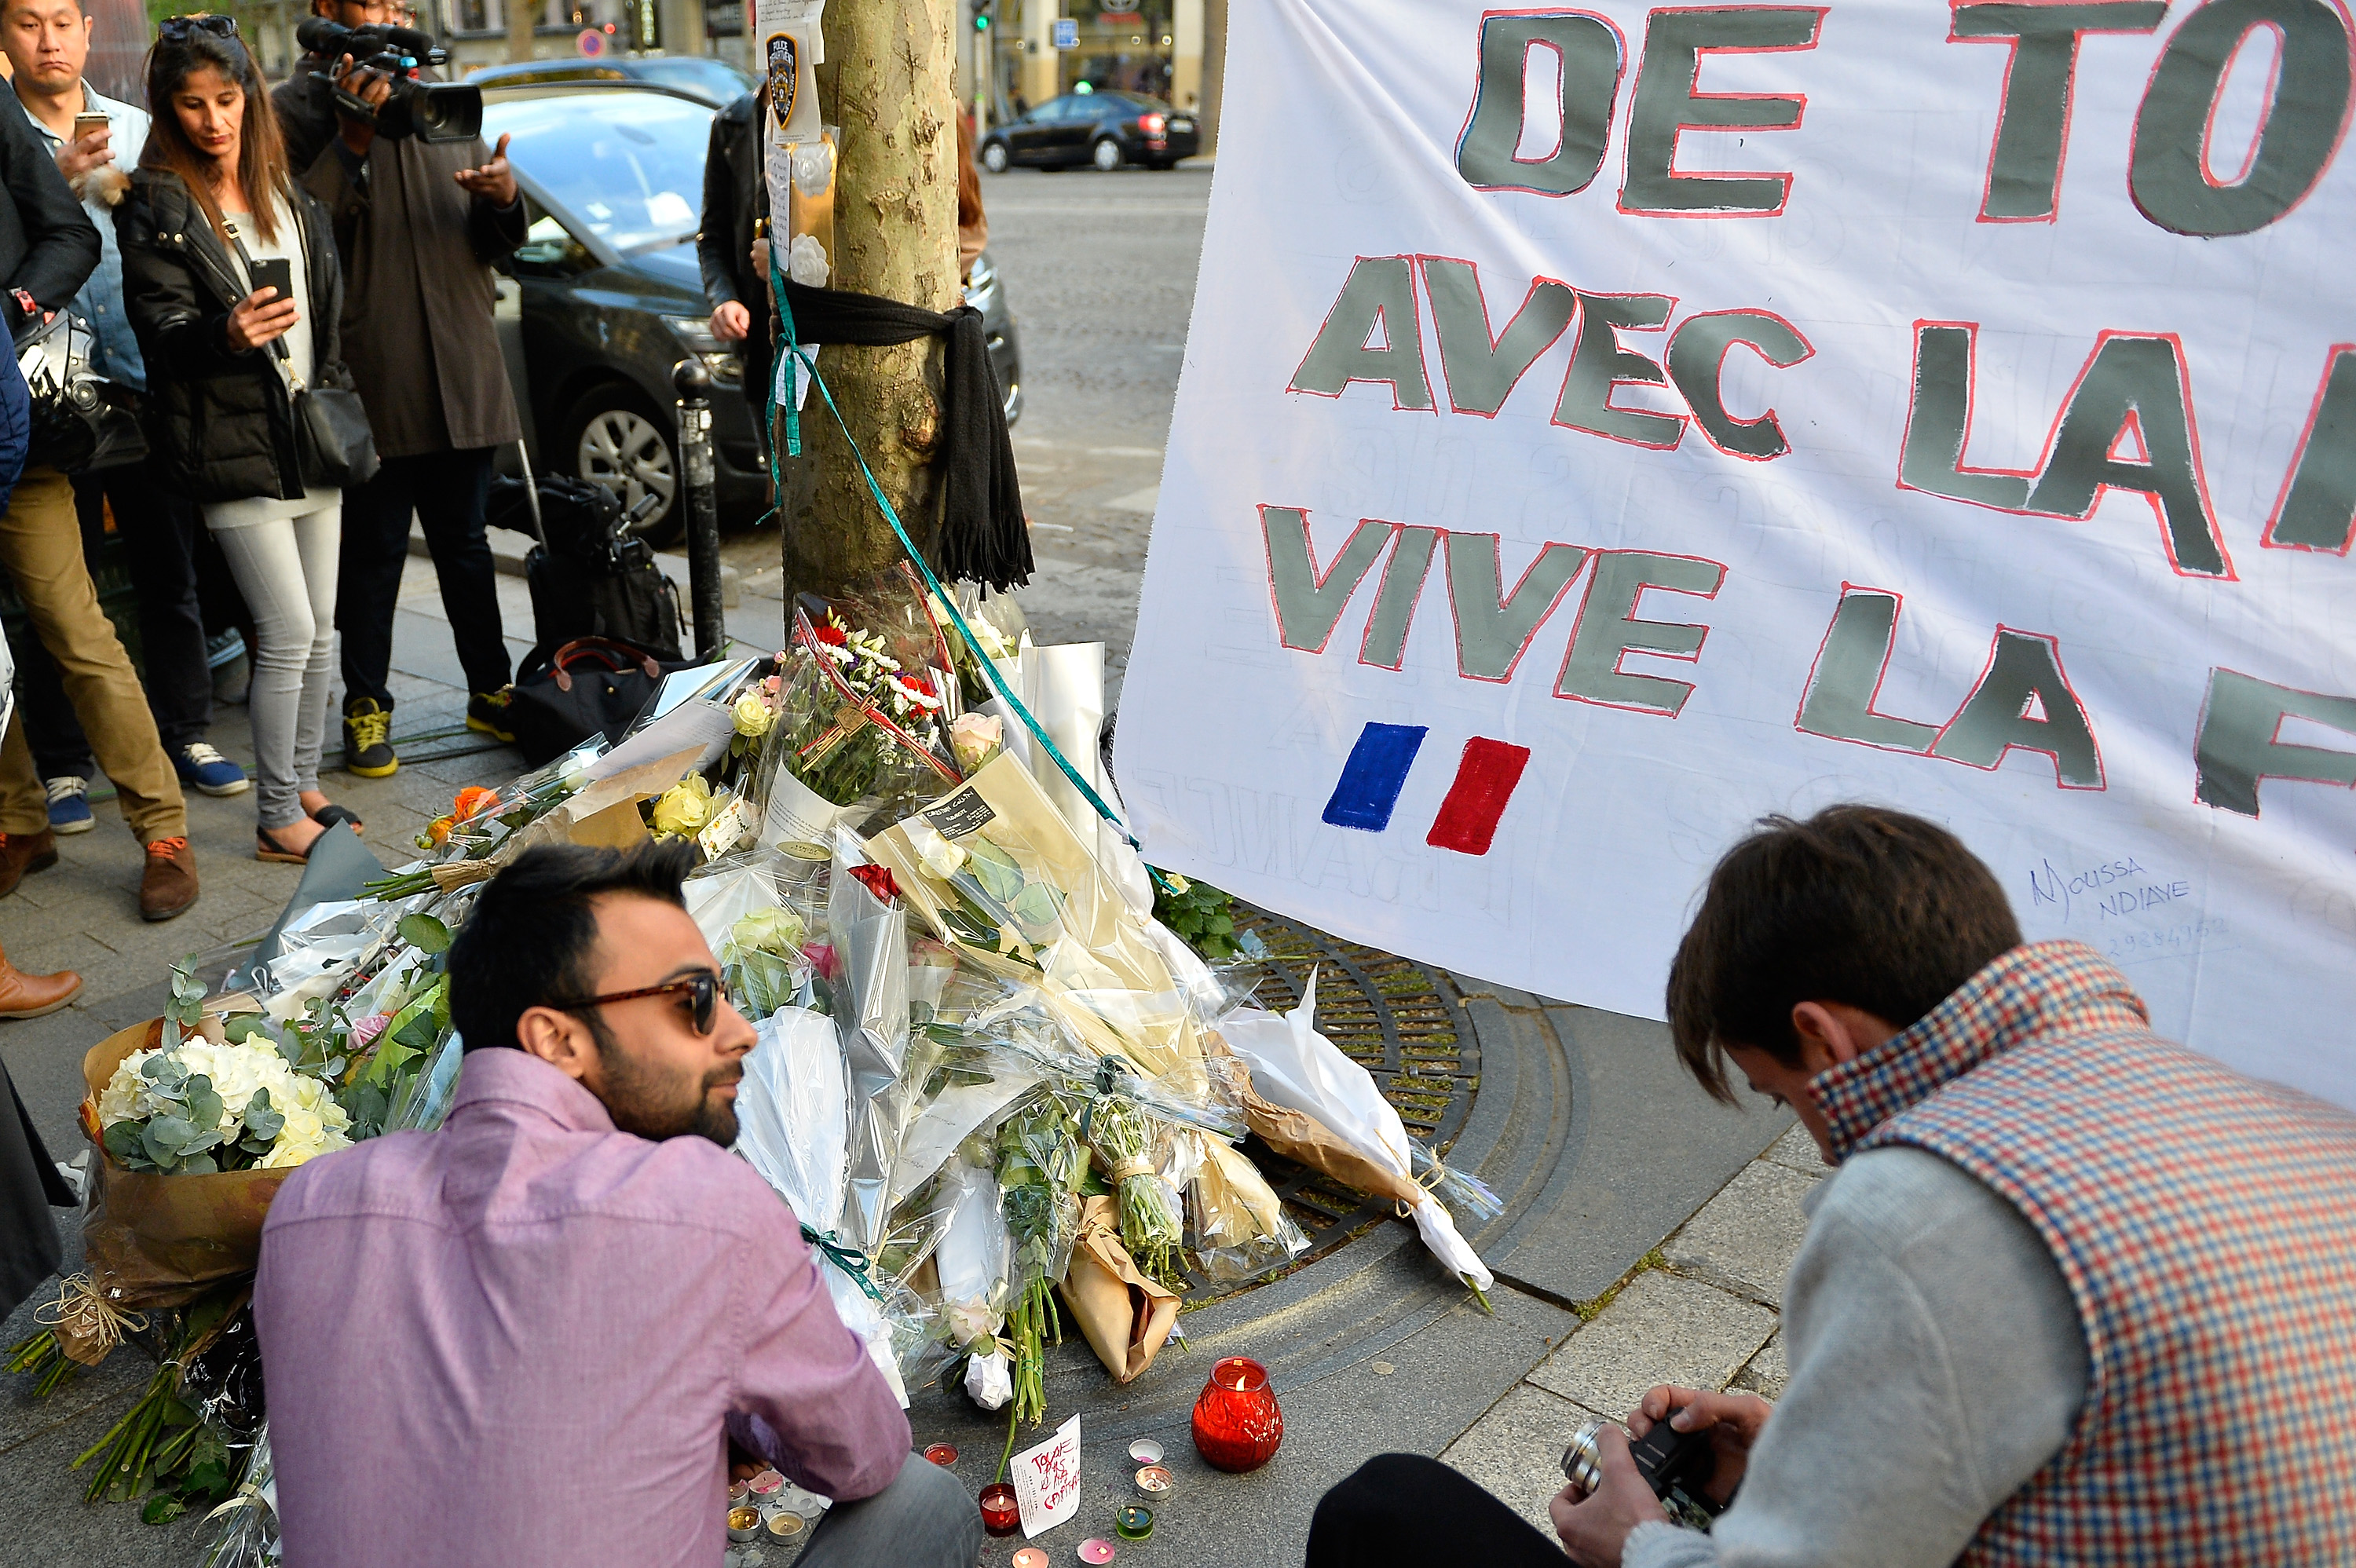 People leave flowers as a tribute to the police officer who lost his life on the Champs-Elysées boulevard in Paris when a gunman opened fire on police officers, one day after the attack, on April 21, 2017.